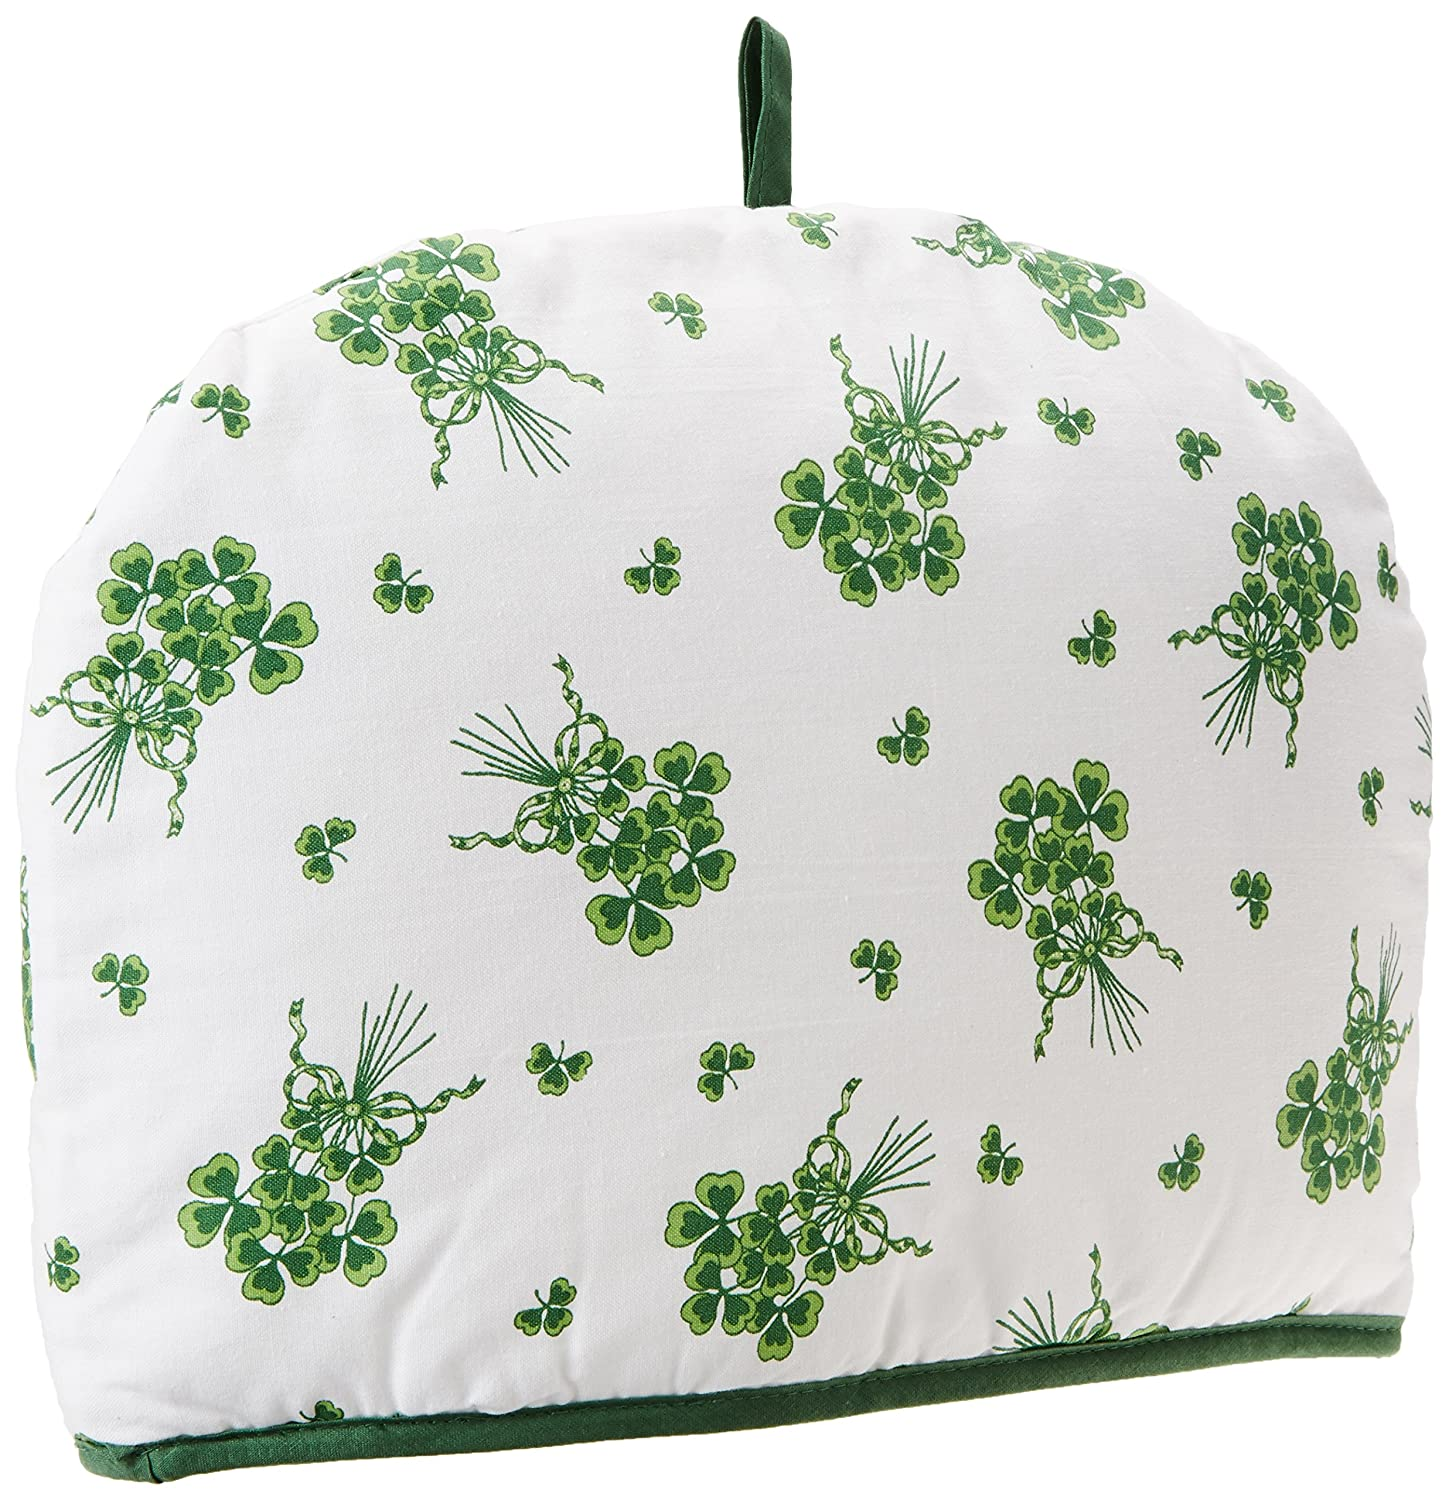 Ulster Weavers Shamrock Bunch Tea Cozy 7SHB04